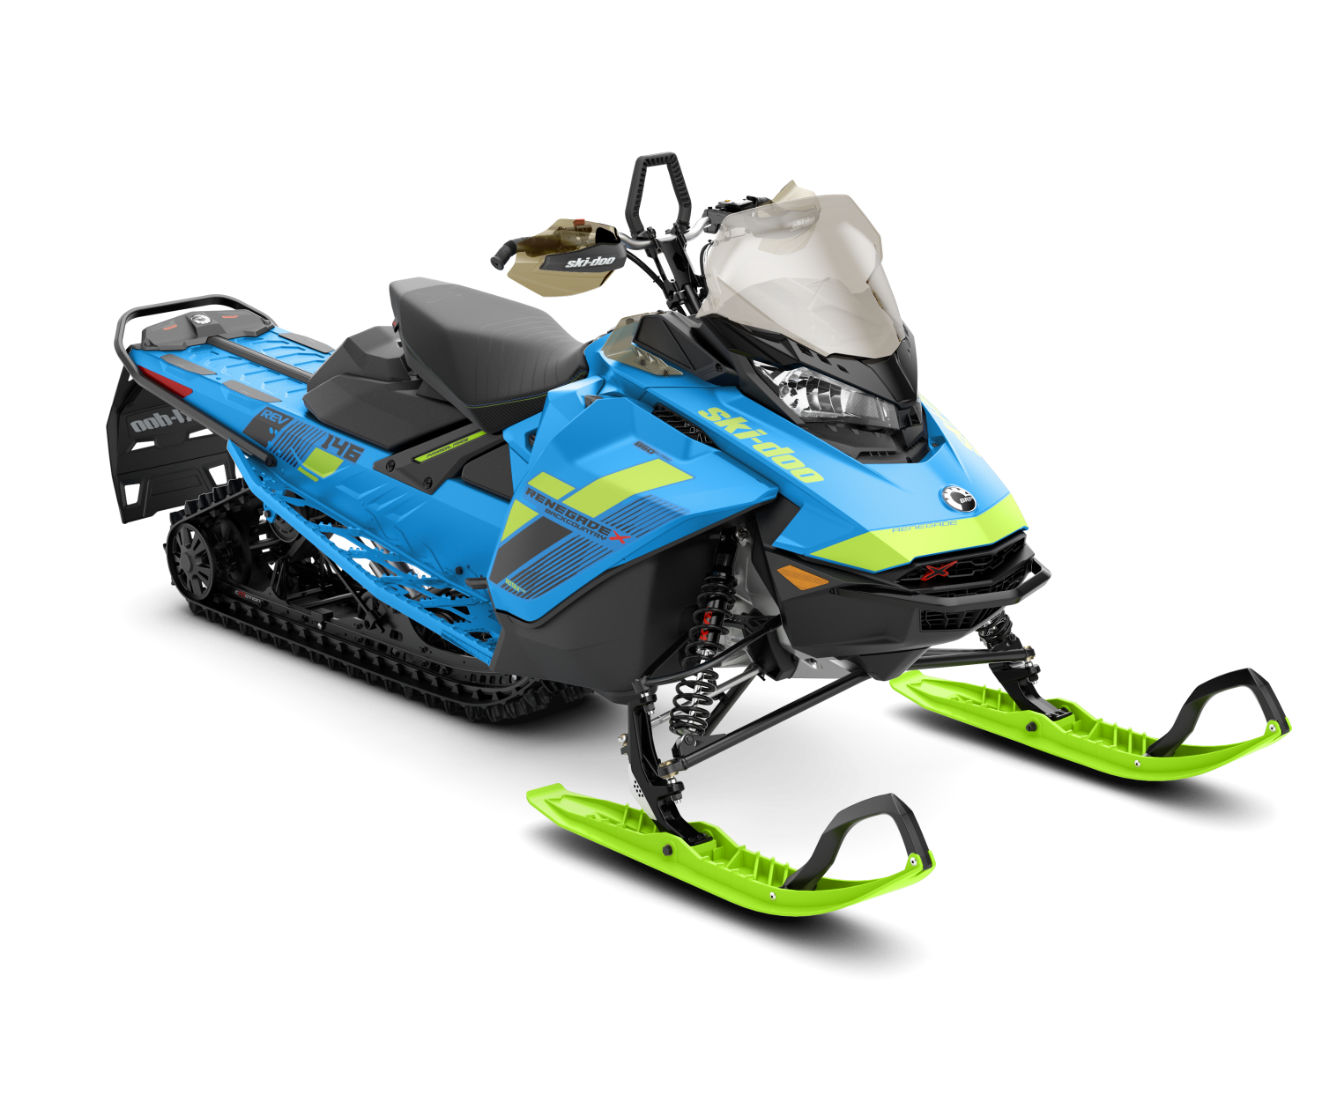 2018 Ski-Doo Renegade Backcountry X 850 E-TEC ES PowderMax 2.0 in Omaha, Nebraska